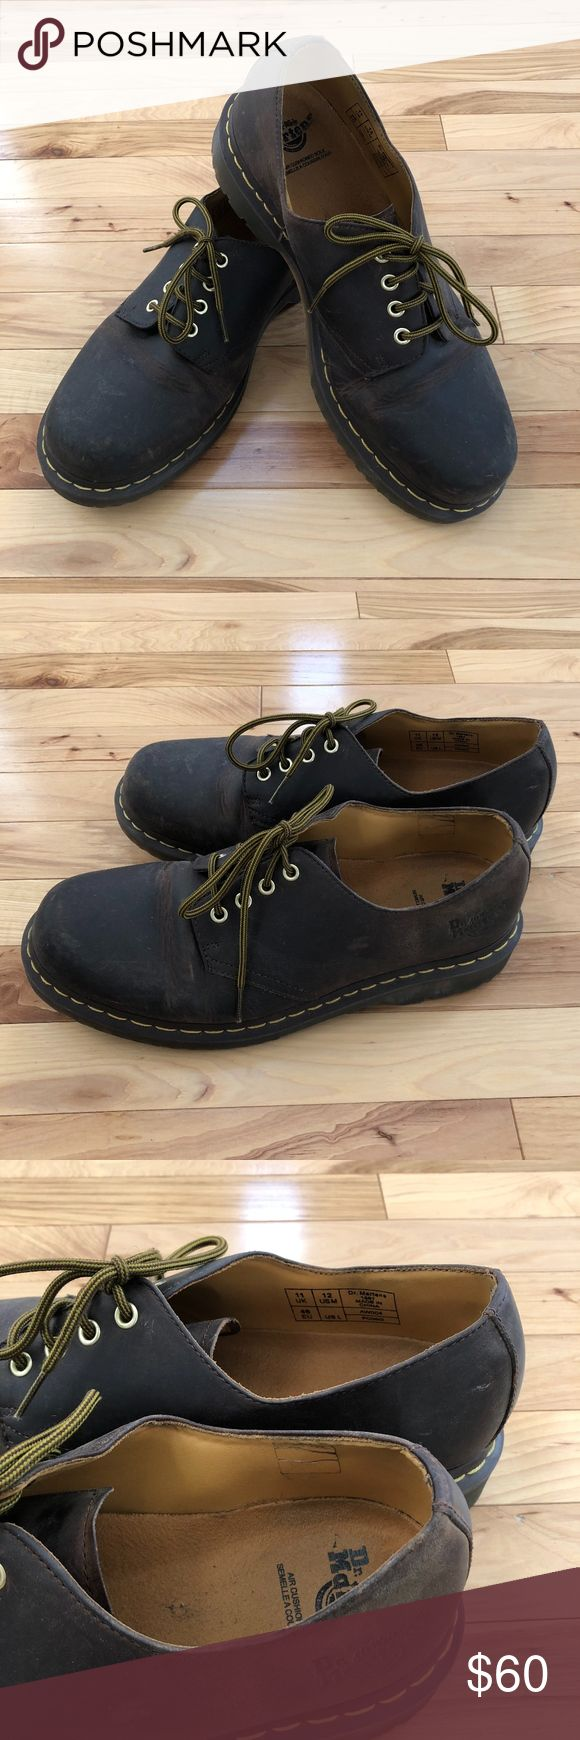 Dr. Marten's Original Men's shoe Men's Dr. Martens Original 8053 DMC shoe, size 12. In gently used condition, maybe worn 2-3 times with minor marks on leather from normal wear. Details of the shoe include full, premium leather uppers, lace up closure, air cushioned sole, heat-sealed and slip resistant. Lots of life left in these shoes, simply reducing the amount of shoes I have! Feel free to make a reasonable offer! :) Dr. Martens Shoes